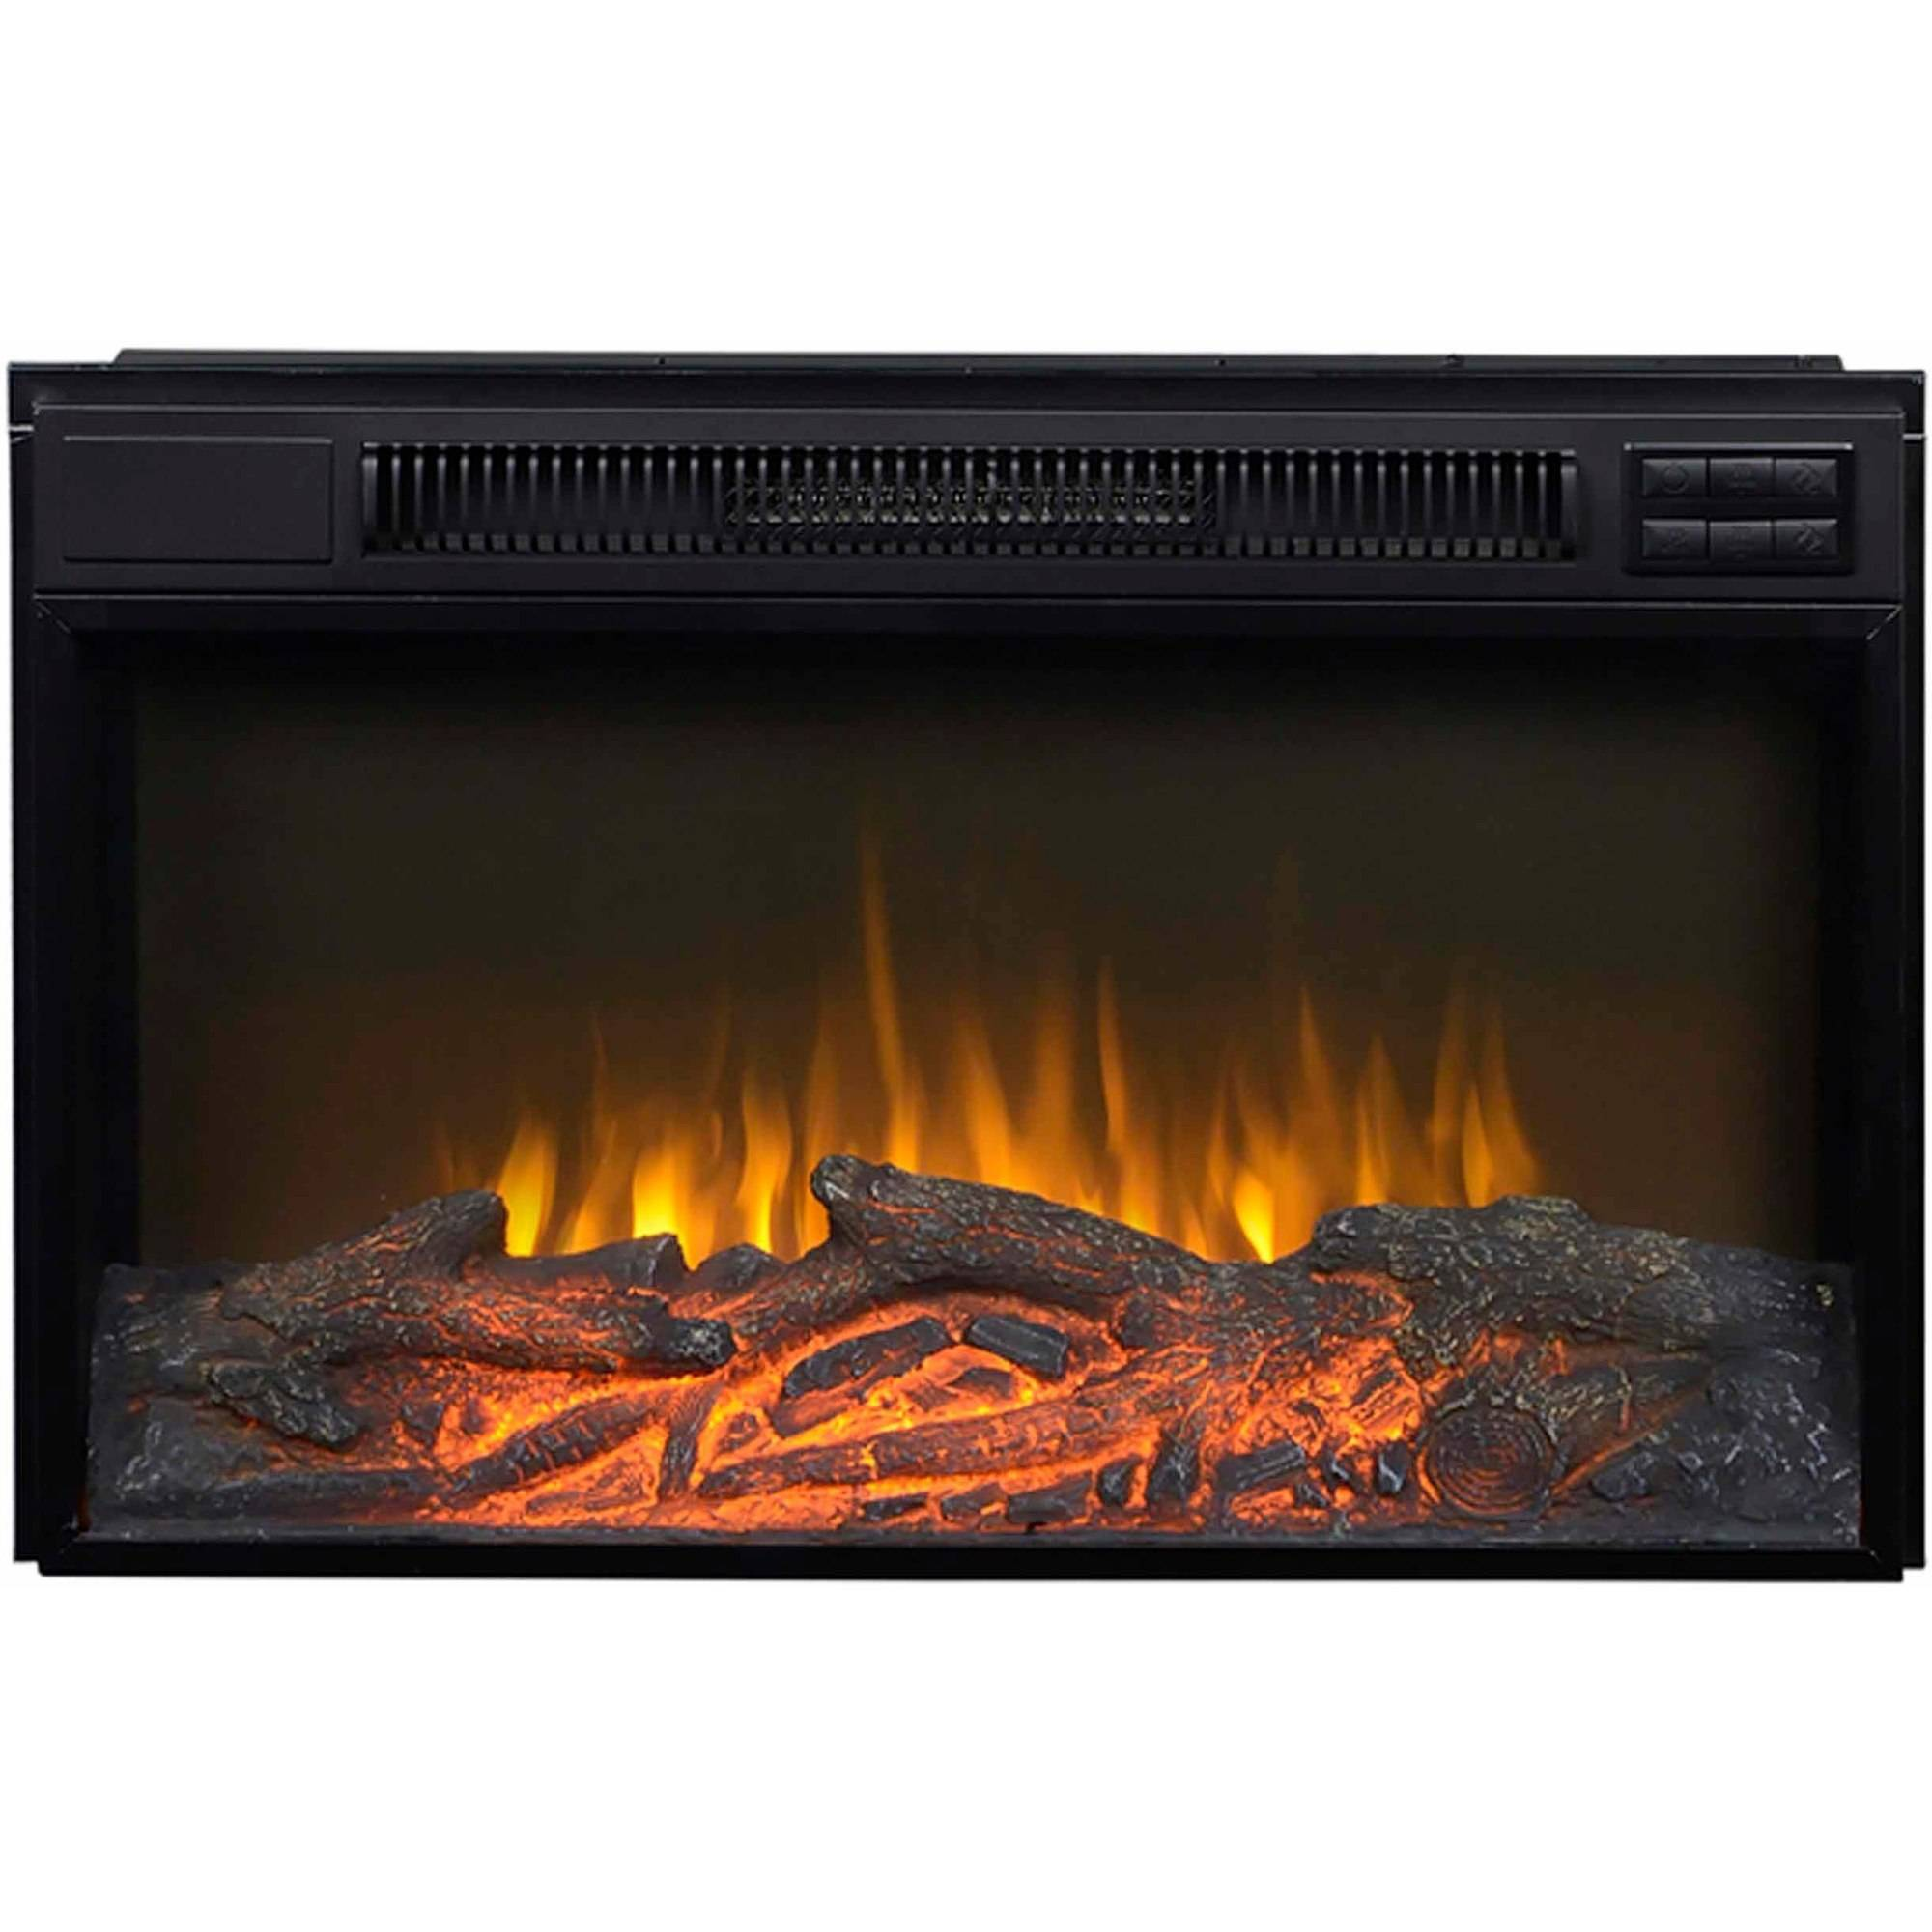 "Flamelux 30"" Wide Firebox Insert, Black"